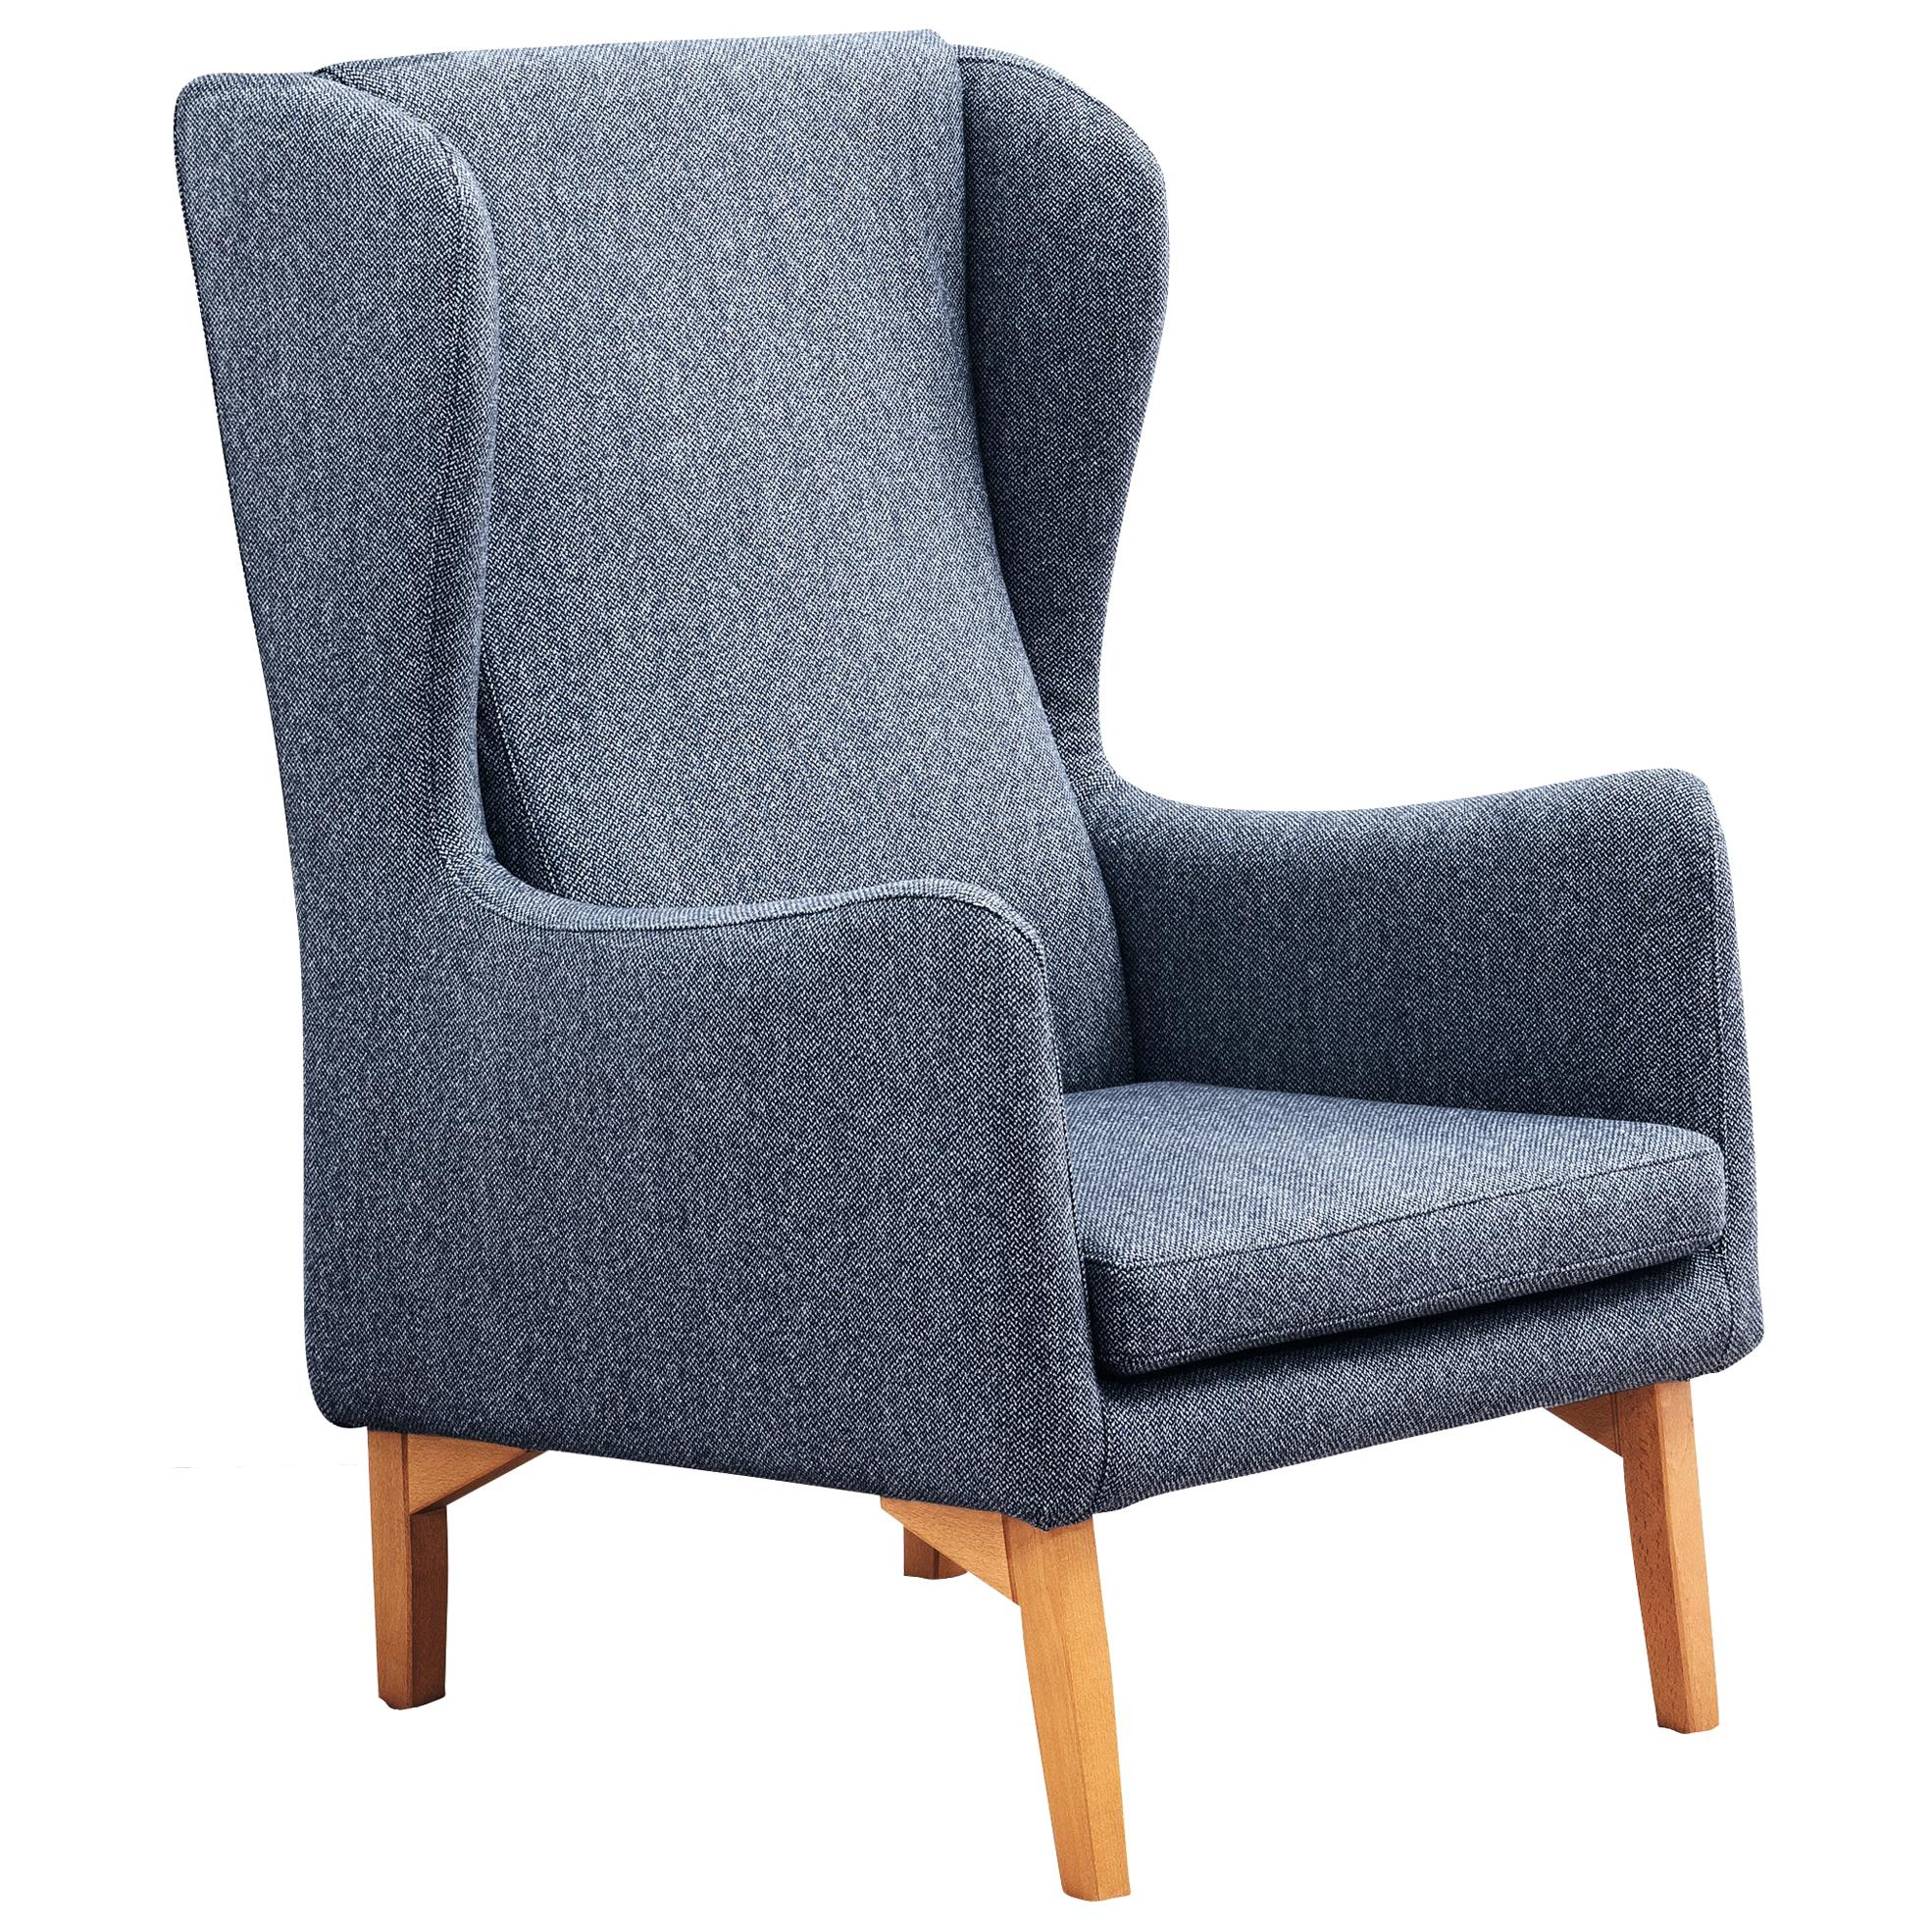 Louise Upholstered Armchair in Beechwood Legs, by Miniforms Lab